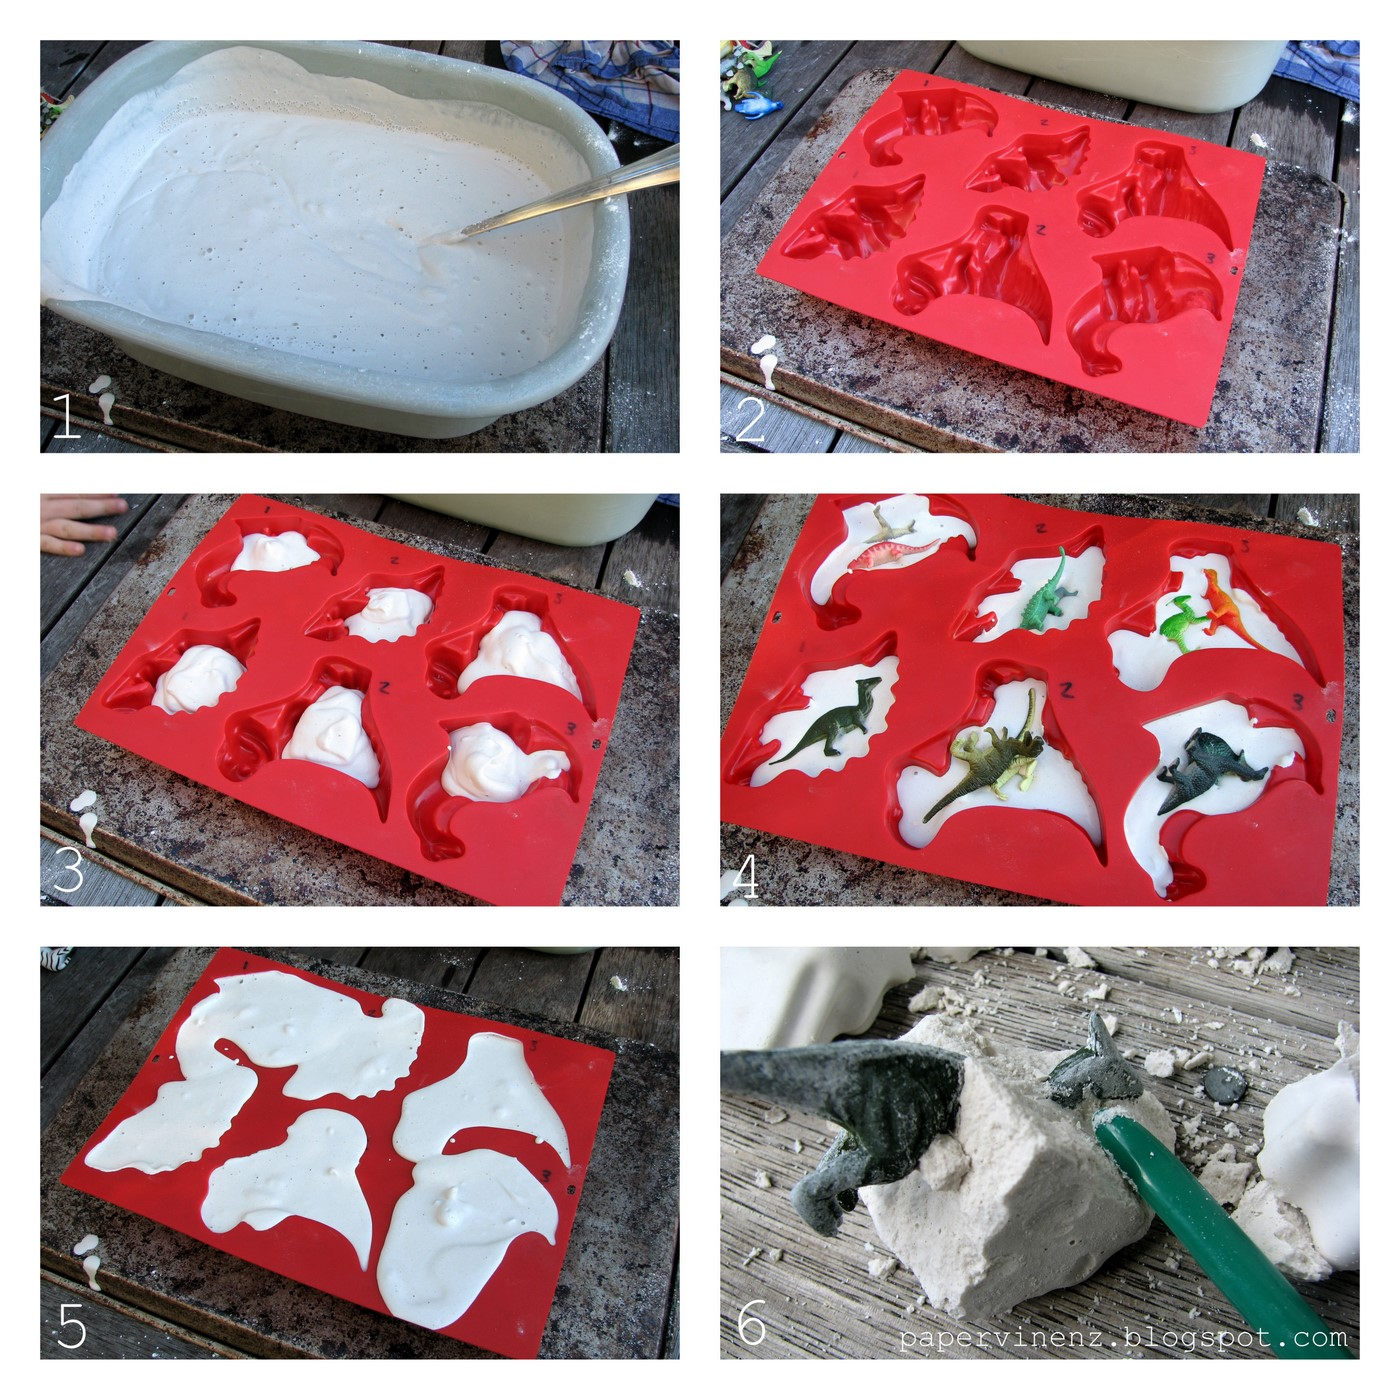 Making Your Own Halloween Decorations: PaperVine: Got Kids? Make Your Own Dinosaur Fossils